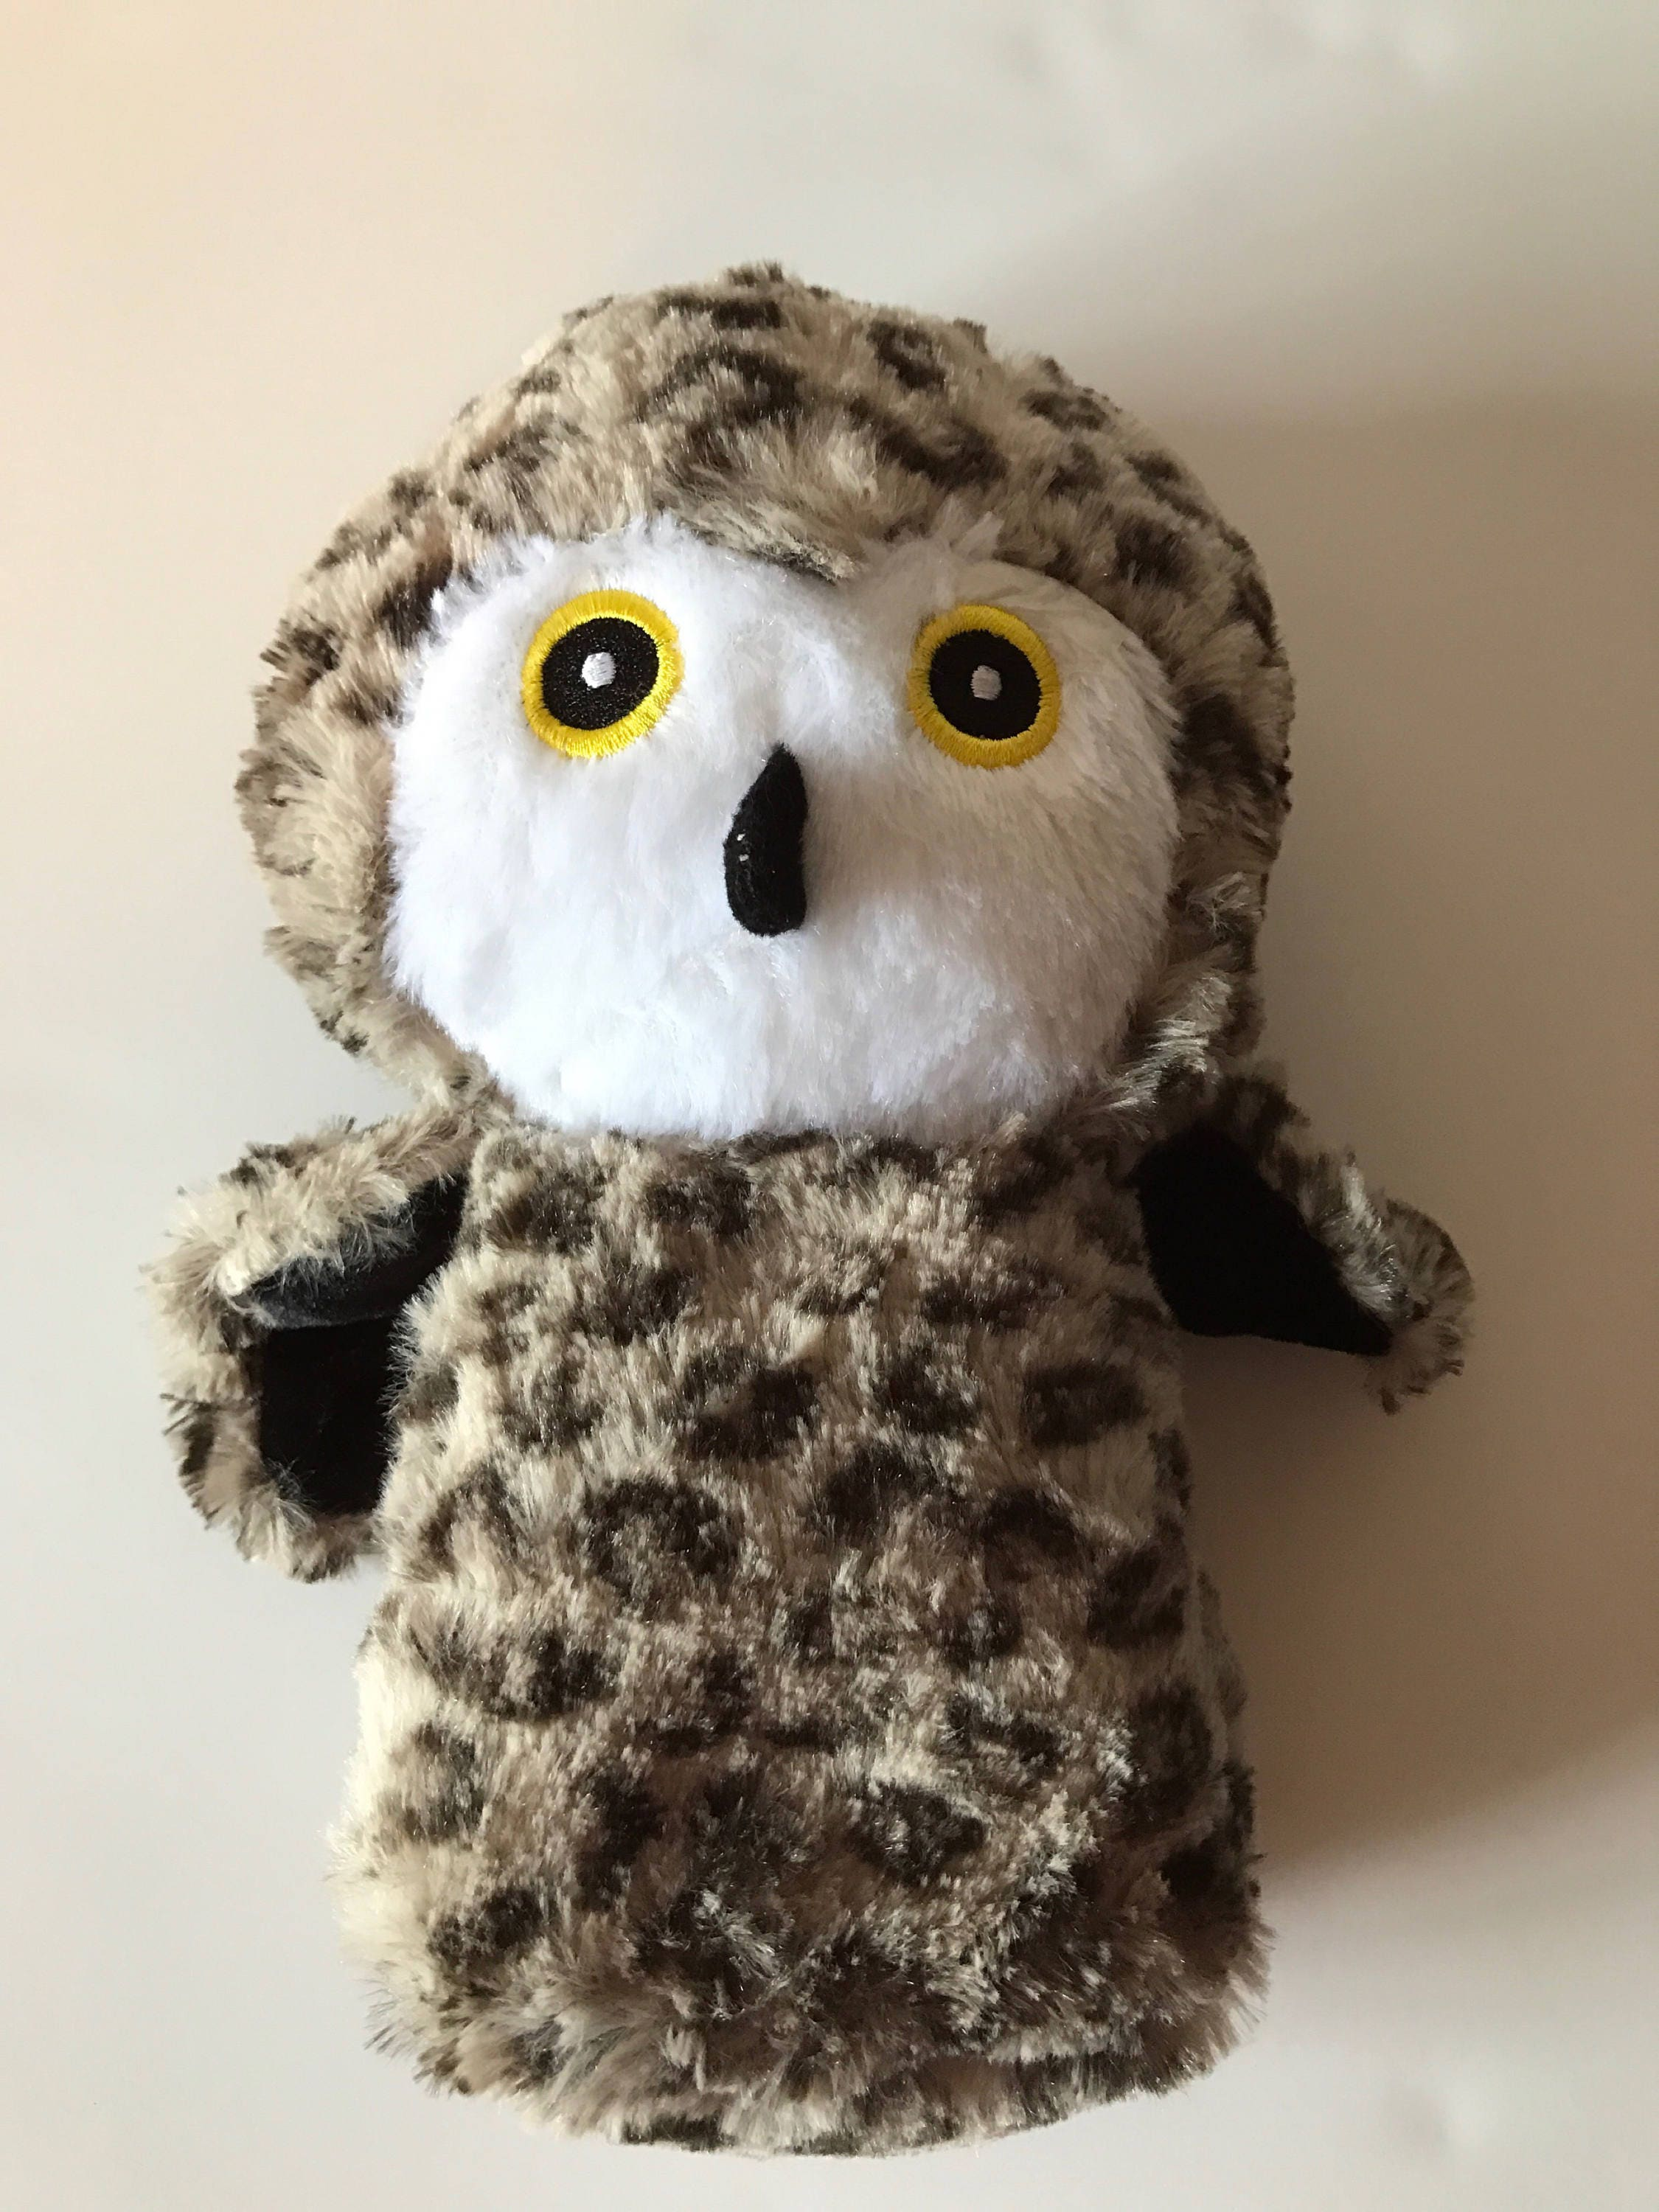 Weighted Stuffed Animal Owl 1 1 2 Lbs Sensory Toy Washable